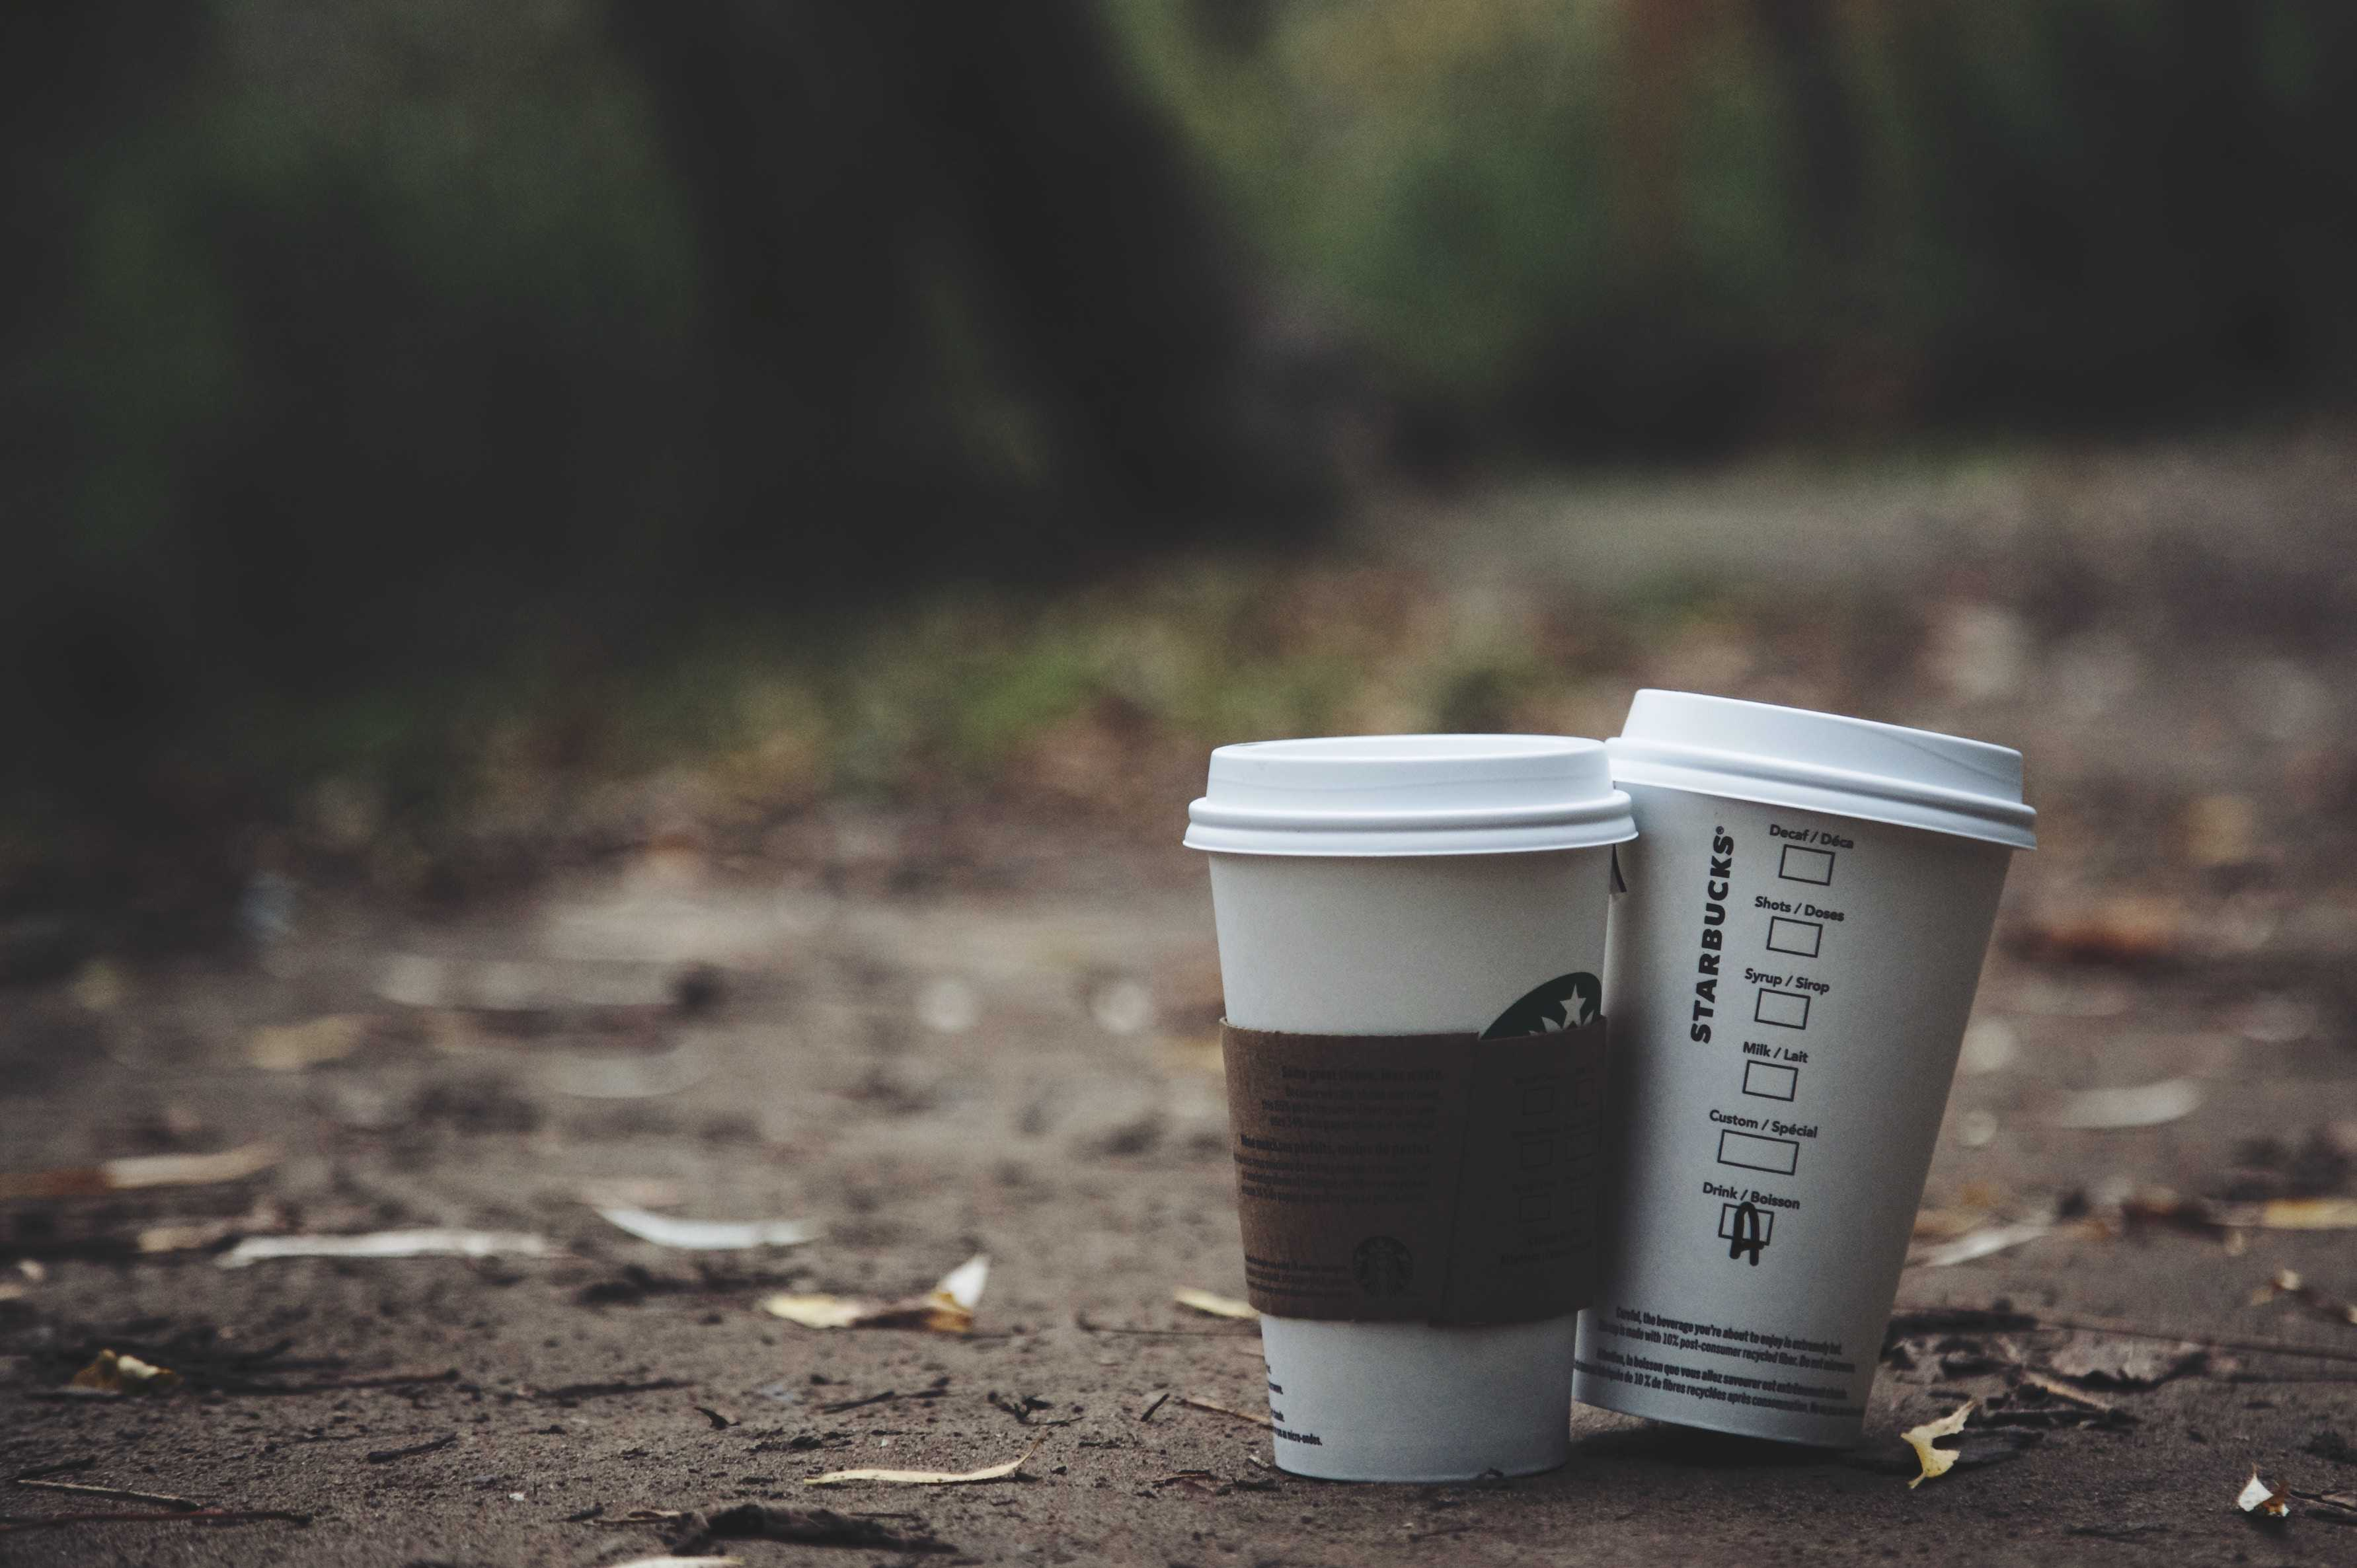 The newest eco-friendly accessory: reusable cups